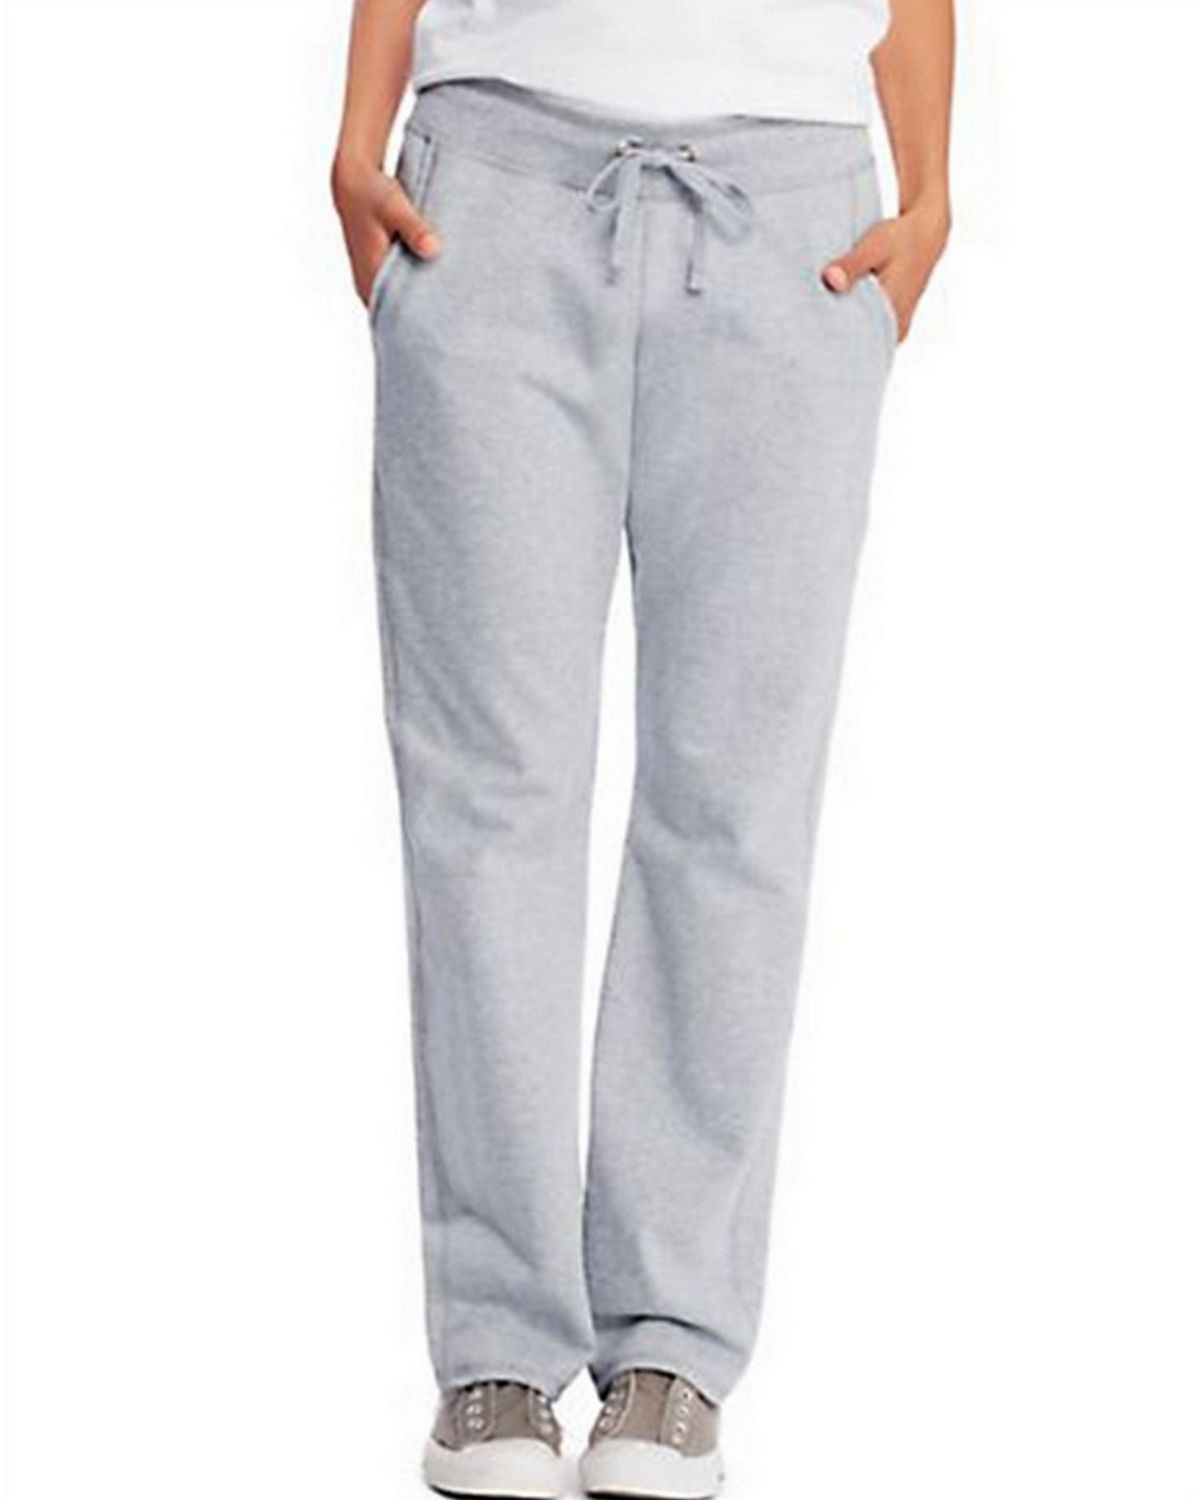 Hanes O4677 Womens French Terry Pocket Pant - Light Steel - S O4677